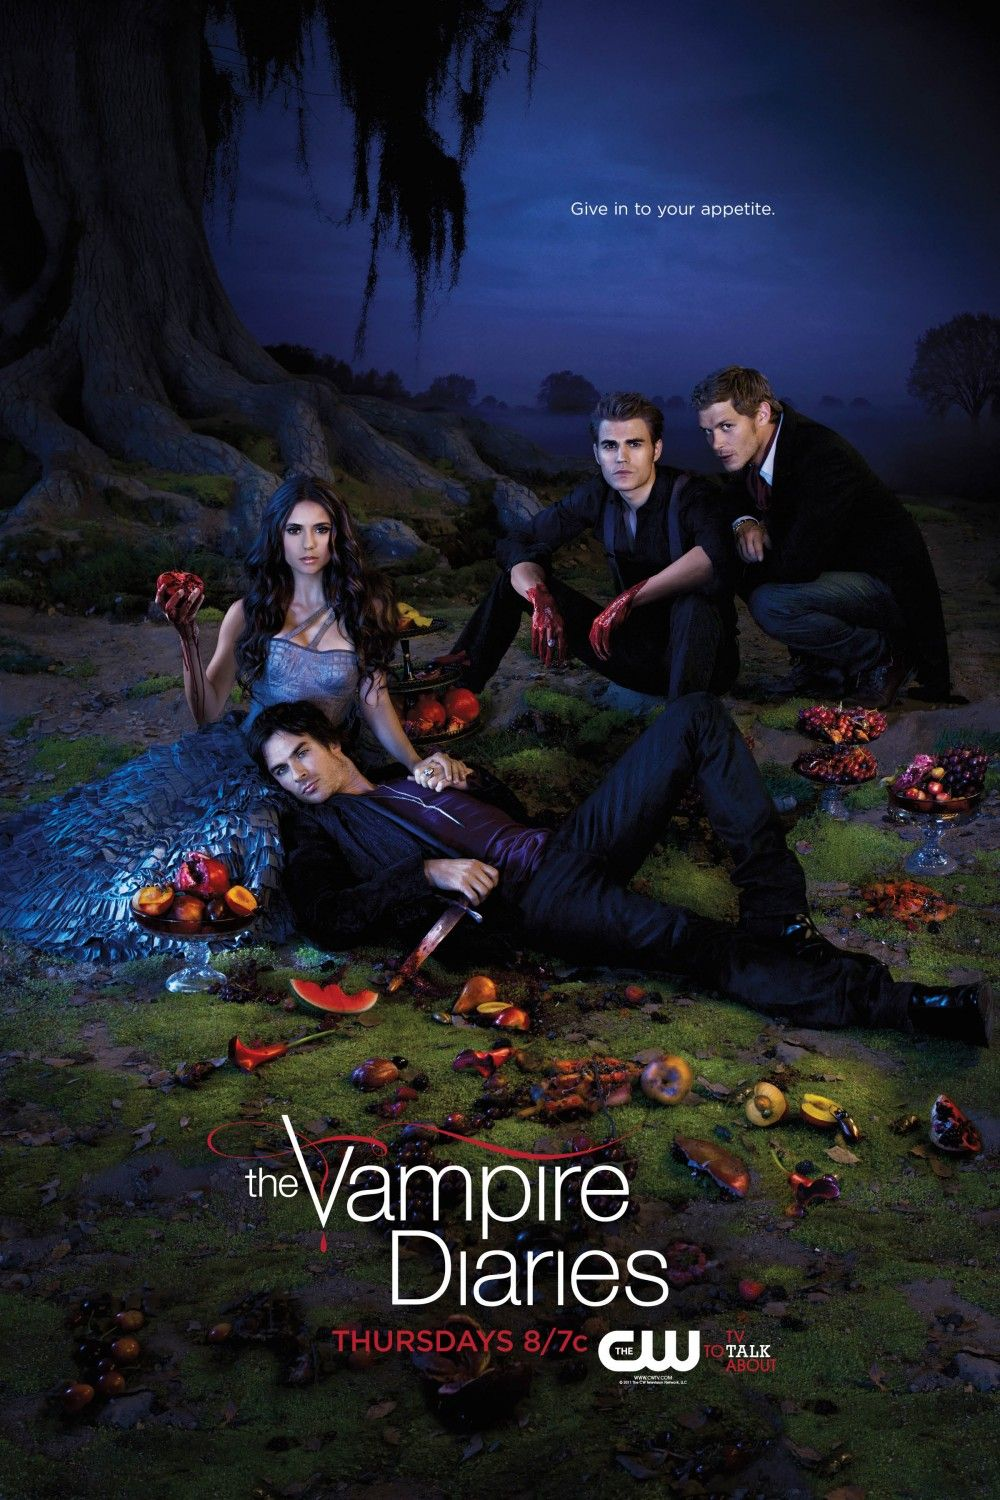 vampire diaries season 7 free online streaming